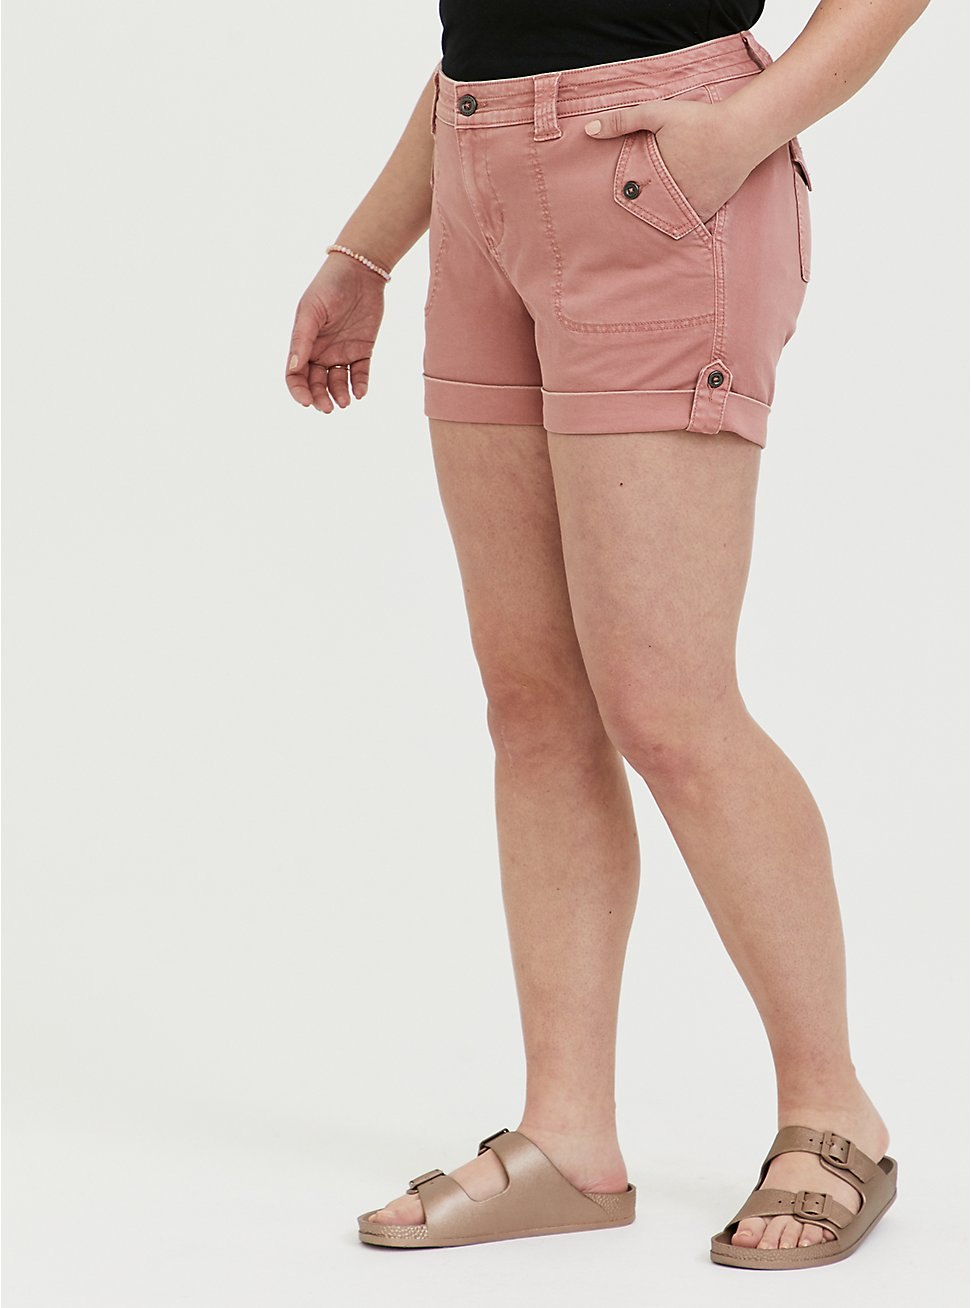 Military Short Short - Twill Dusty Pink, , hi-res